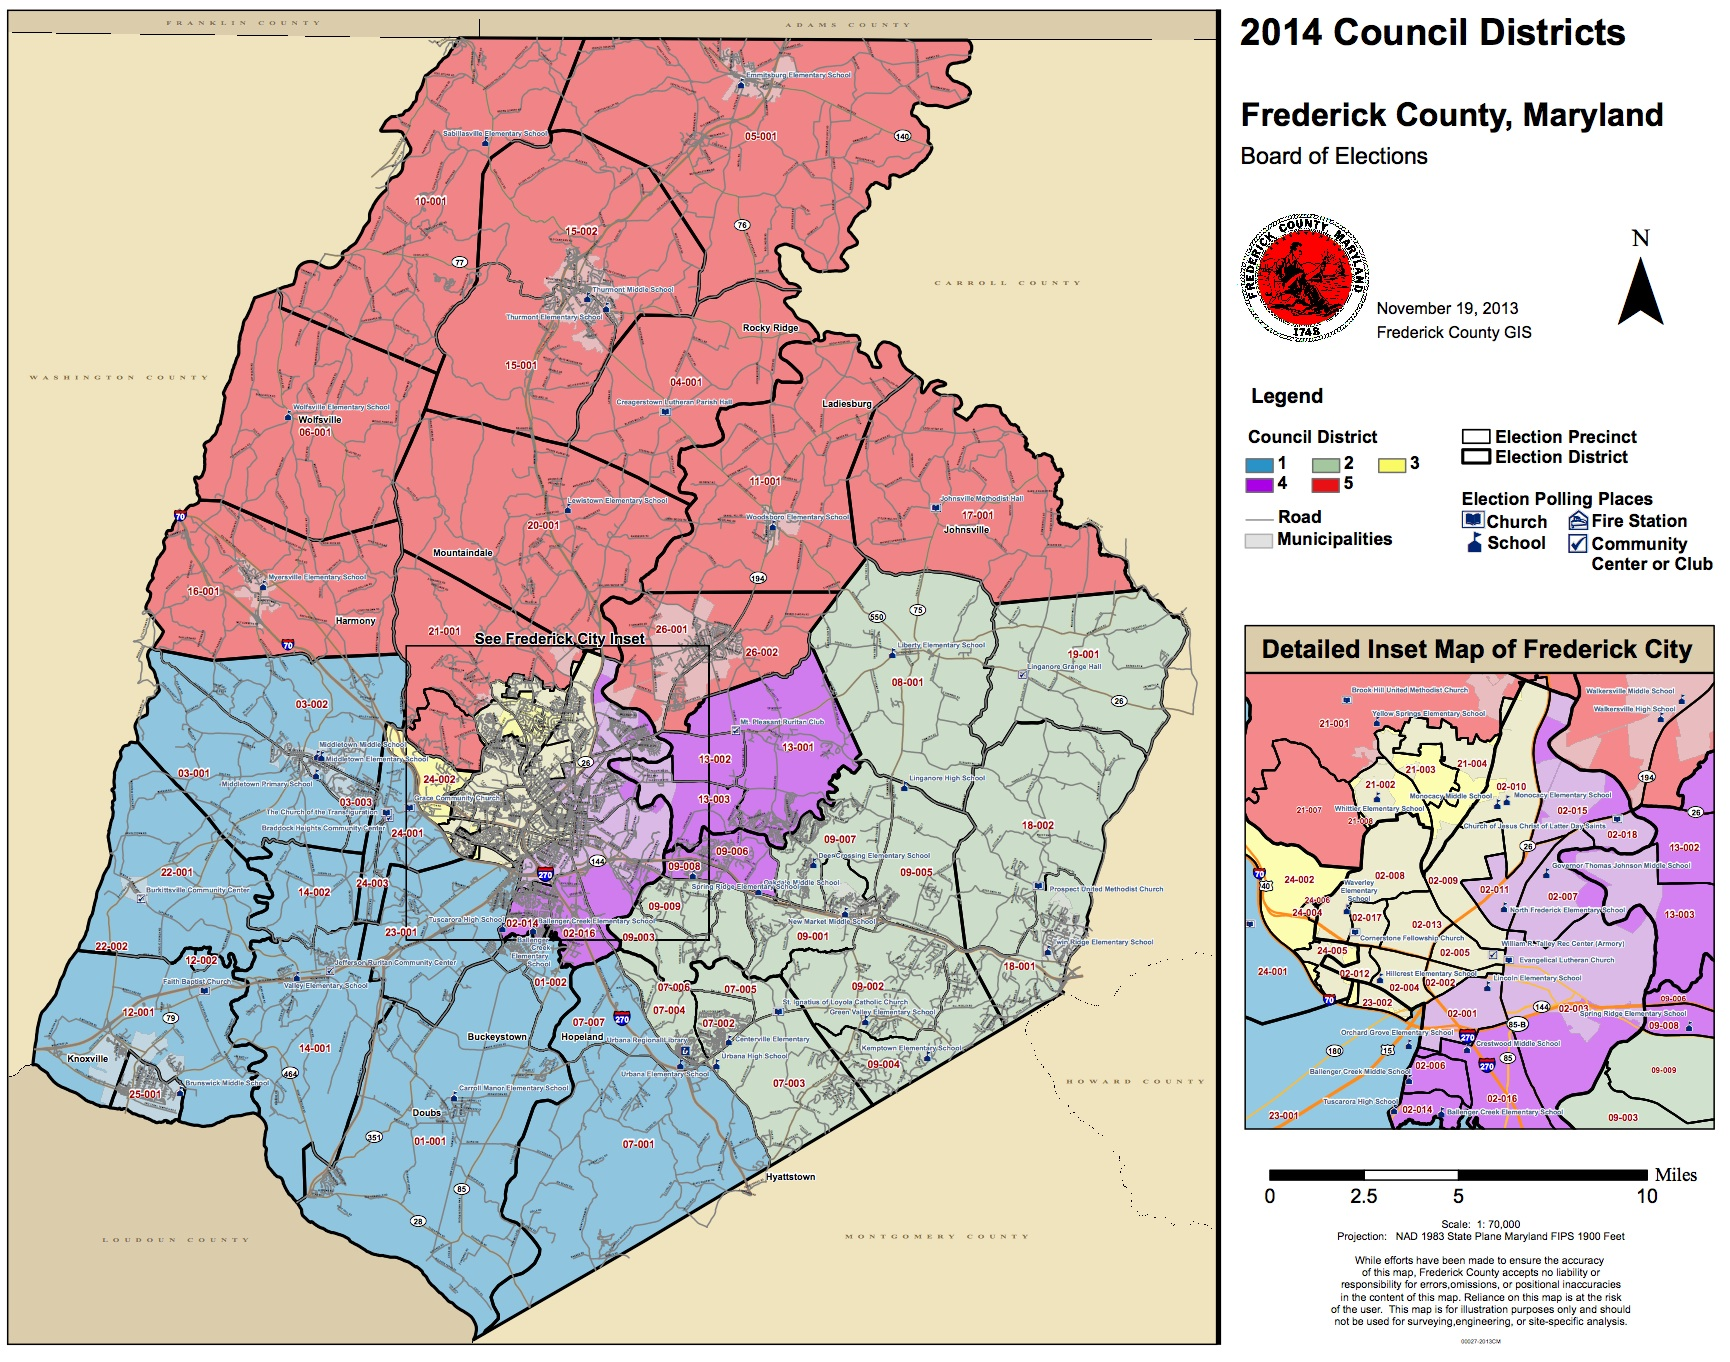 County Council District Maps | Seventh State on